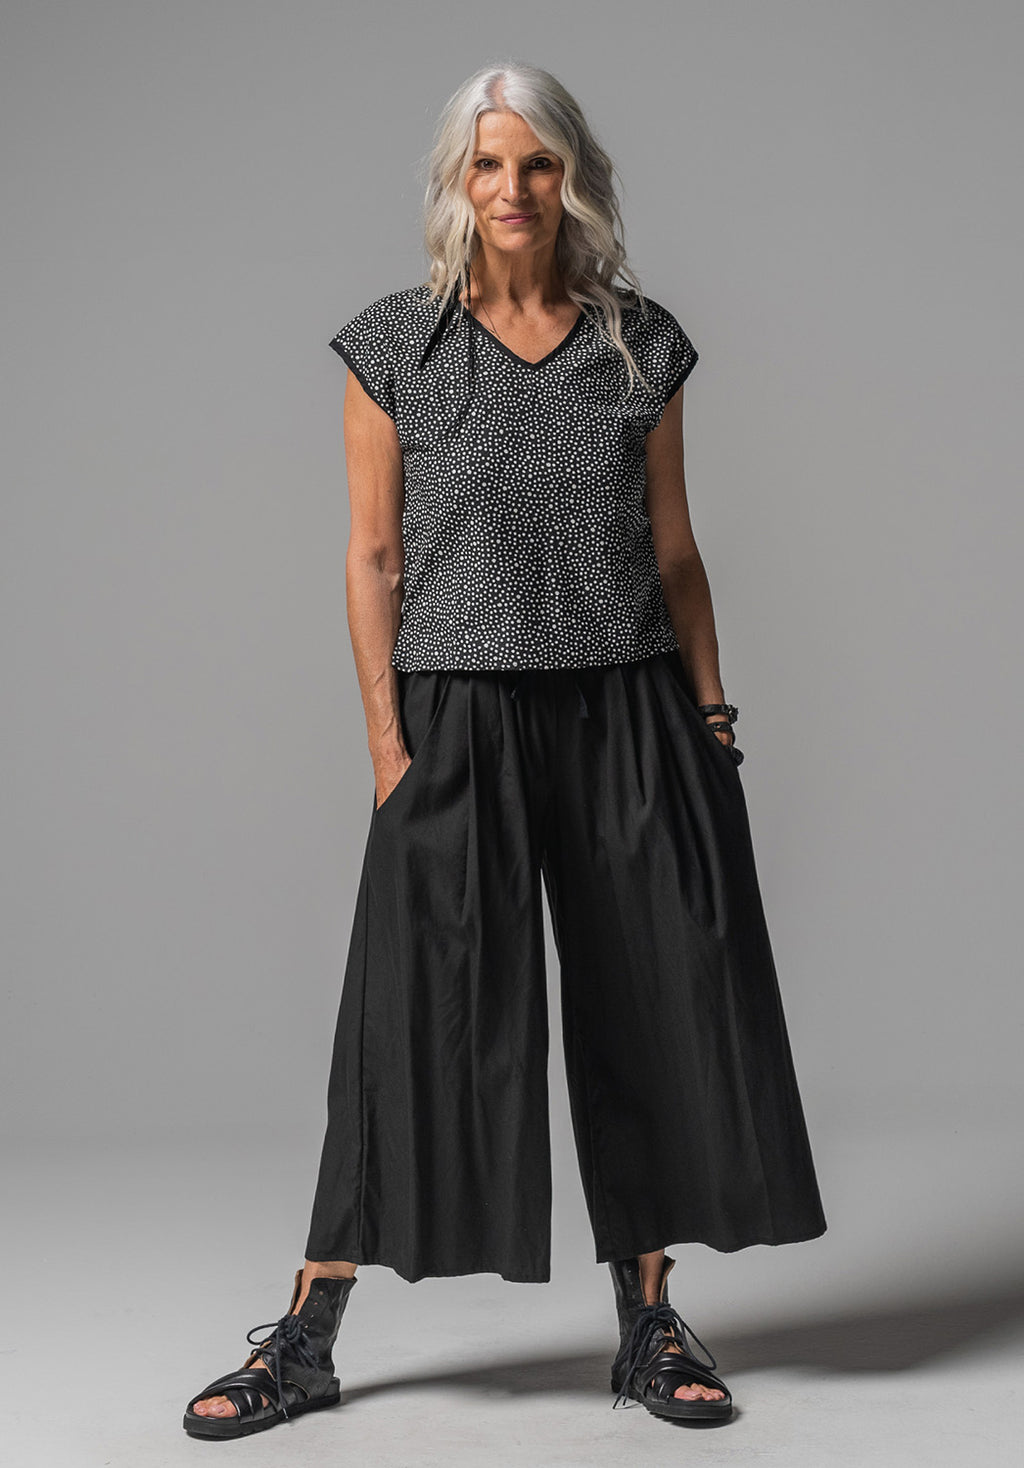 ethical fashion, womens pants online, online womenswear, australian womenswear online, ethical fashion, eco fashion, well made clothing